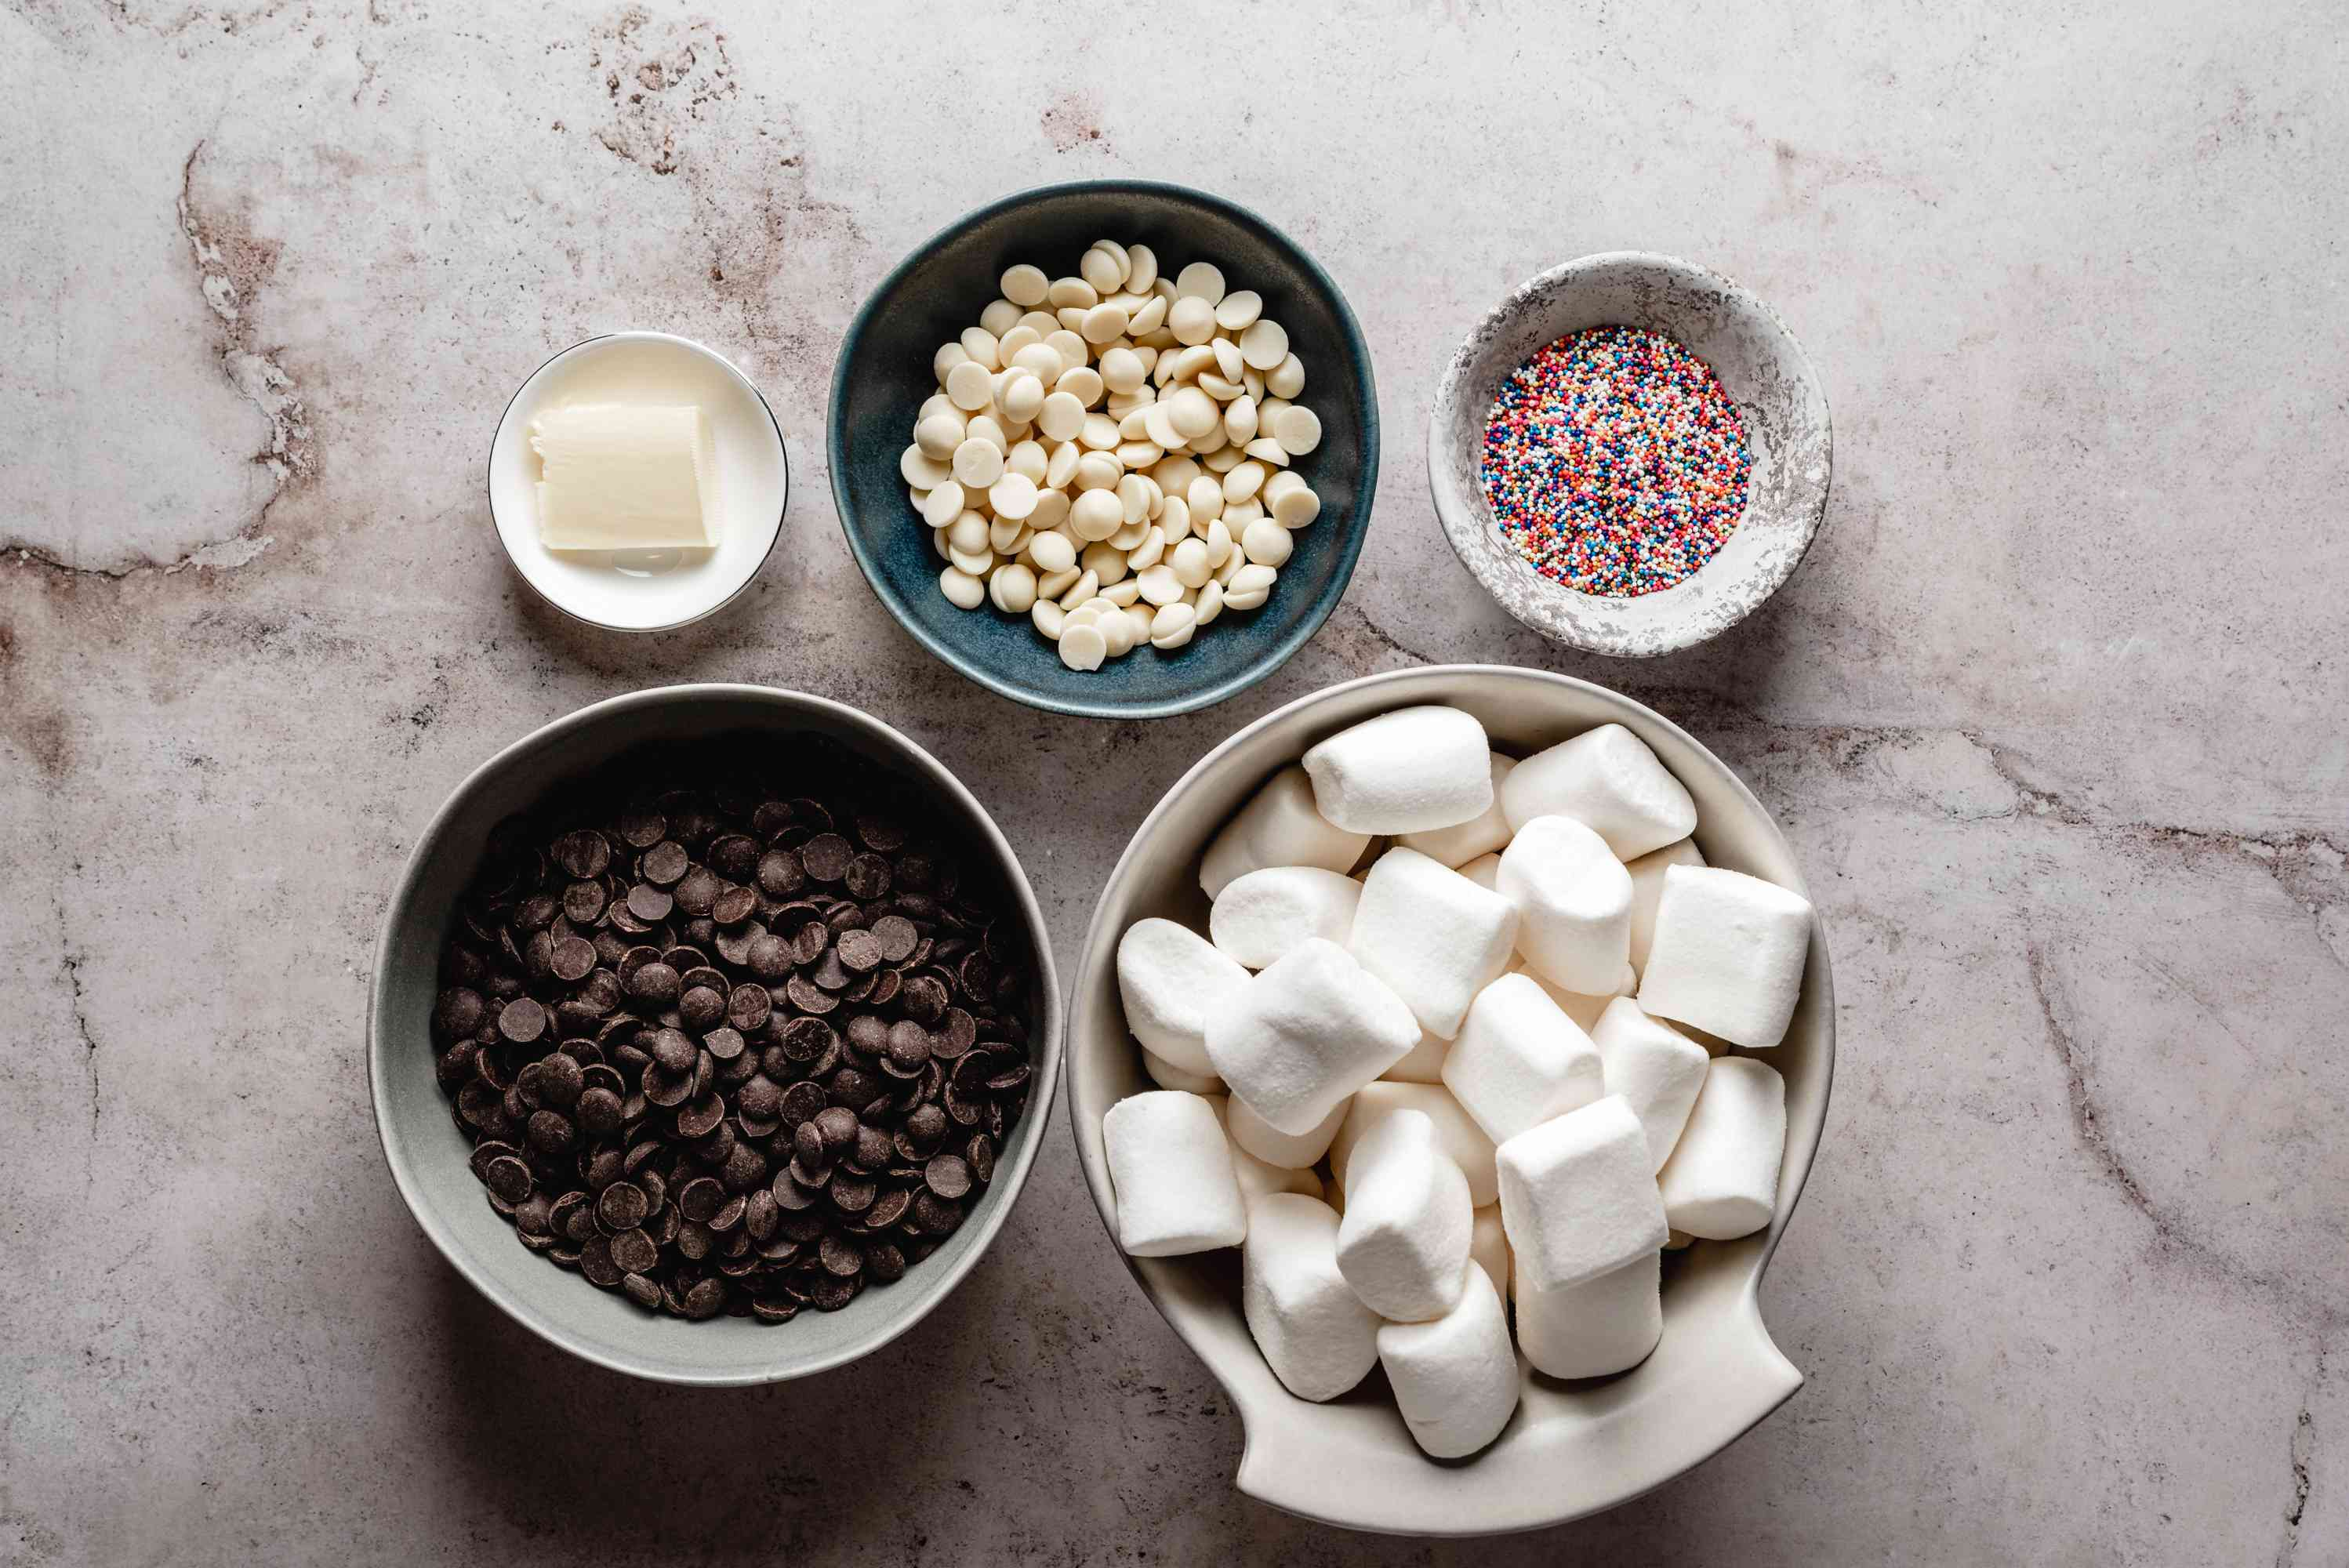 Chocolate-dipped marshmallows ingredients